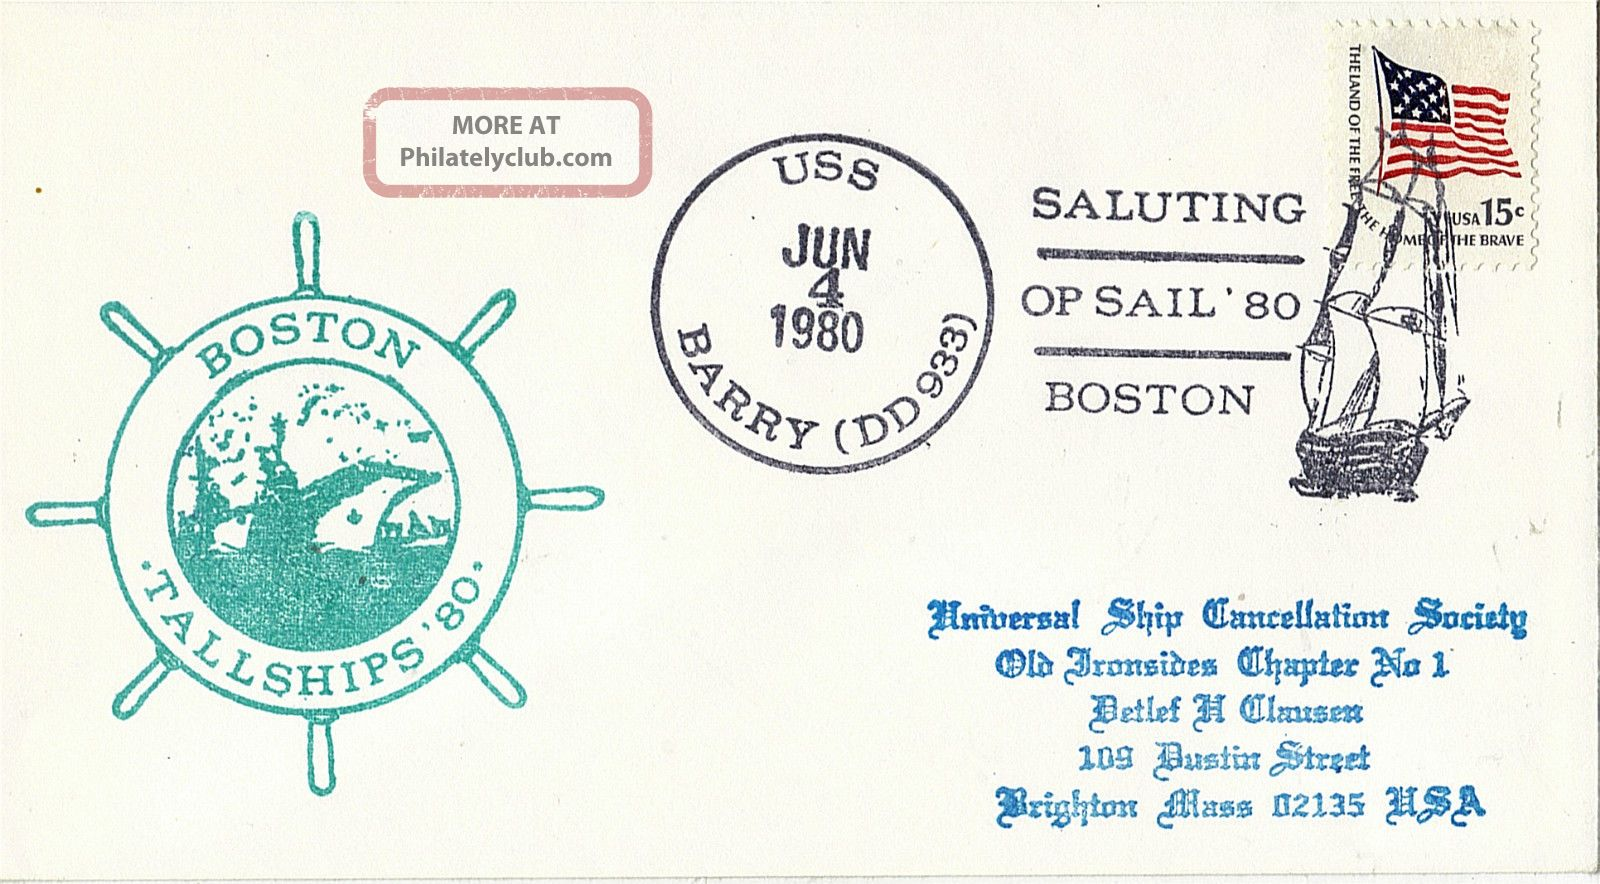 4 June 1980 Uss Barry Dd 933 Us Destroyer Cached Cover Boston Tallships ' 80 United States photo